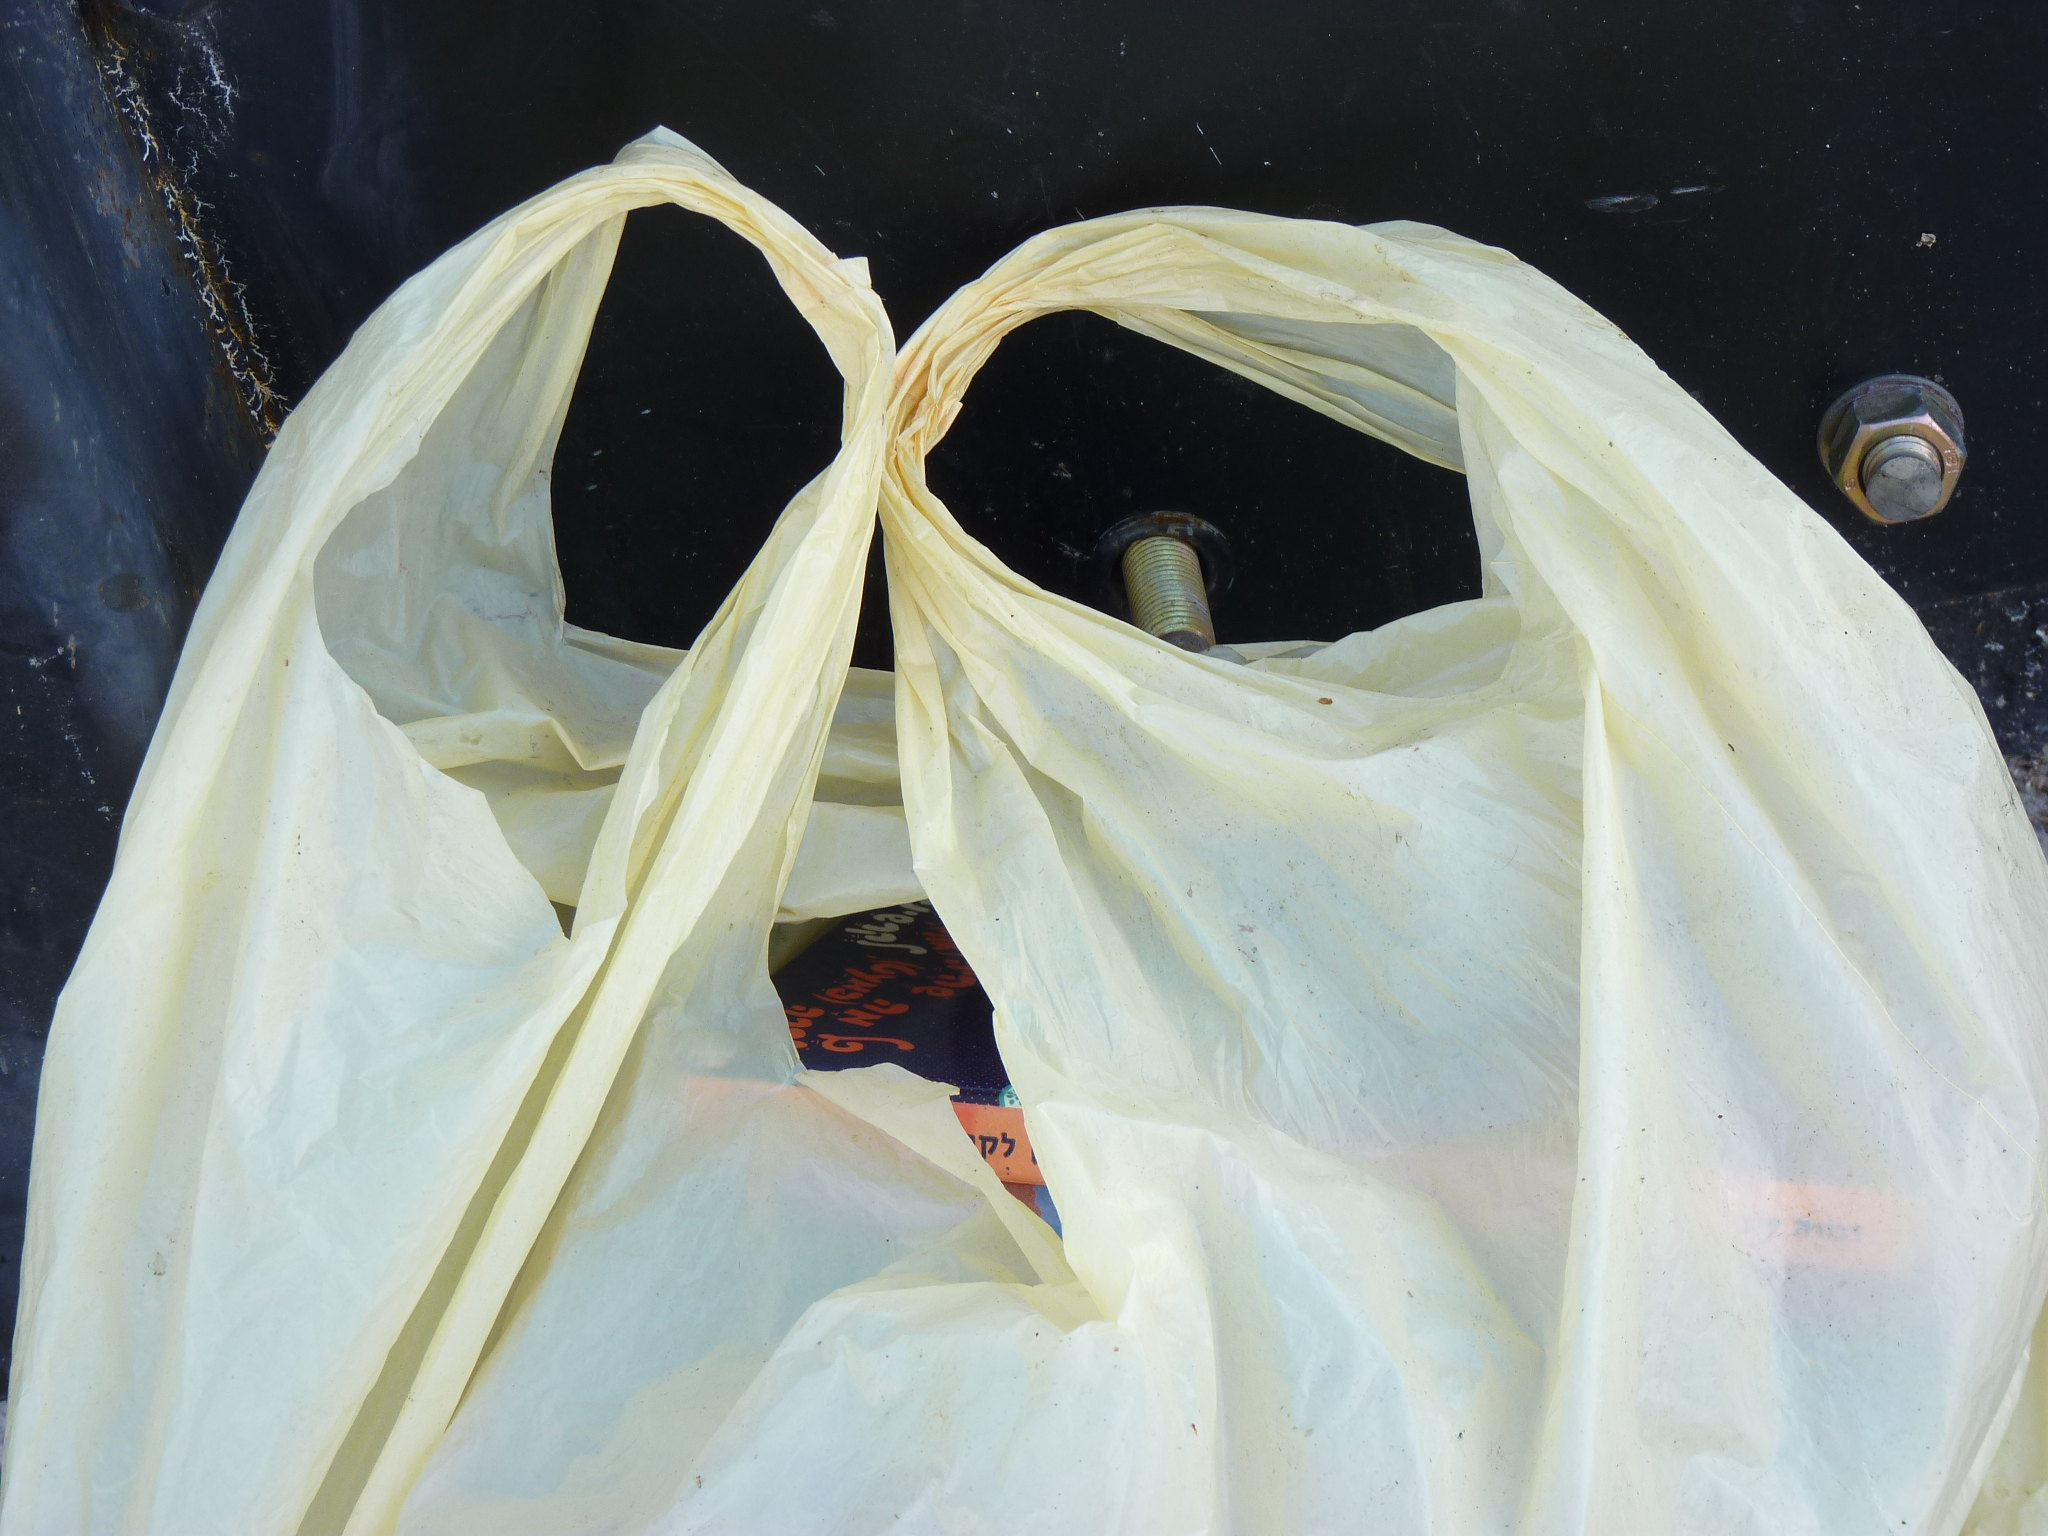 Plastic bag. (Credit: zeevveez/ Flickr)